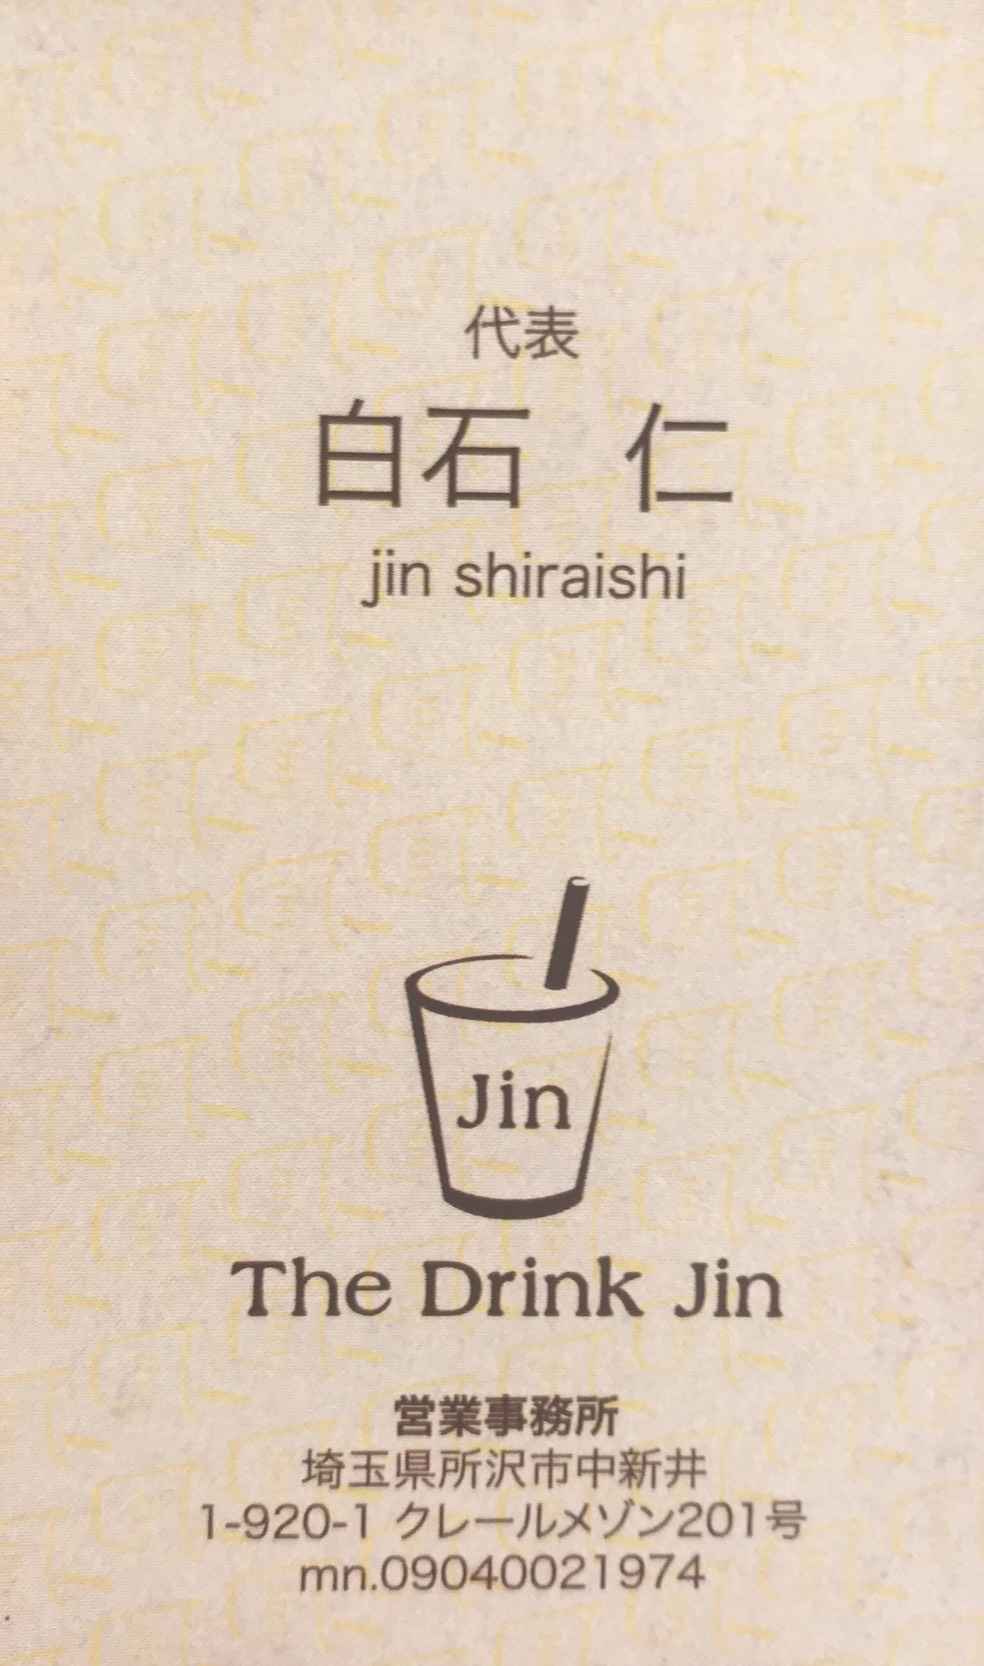 The Drink Jin